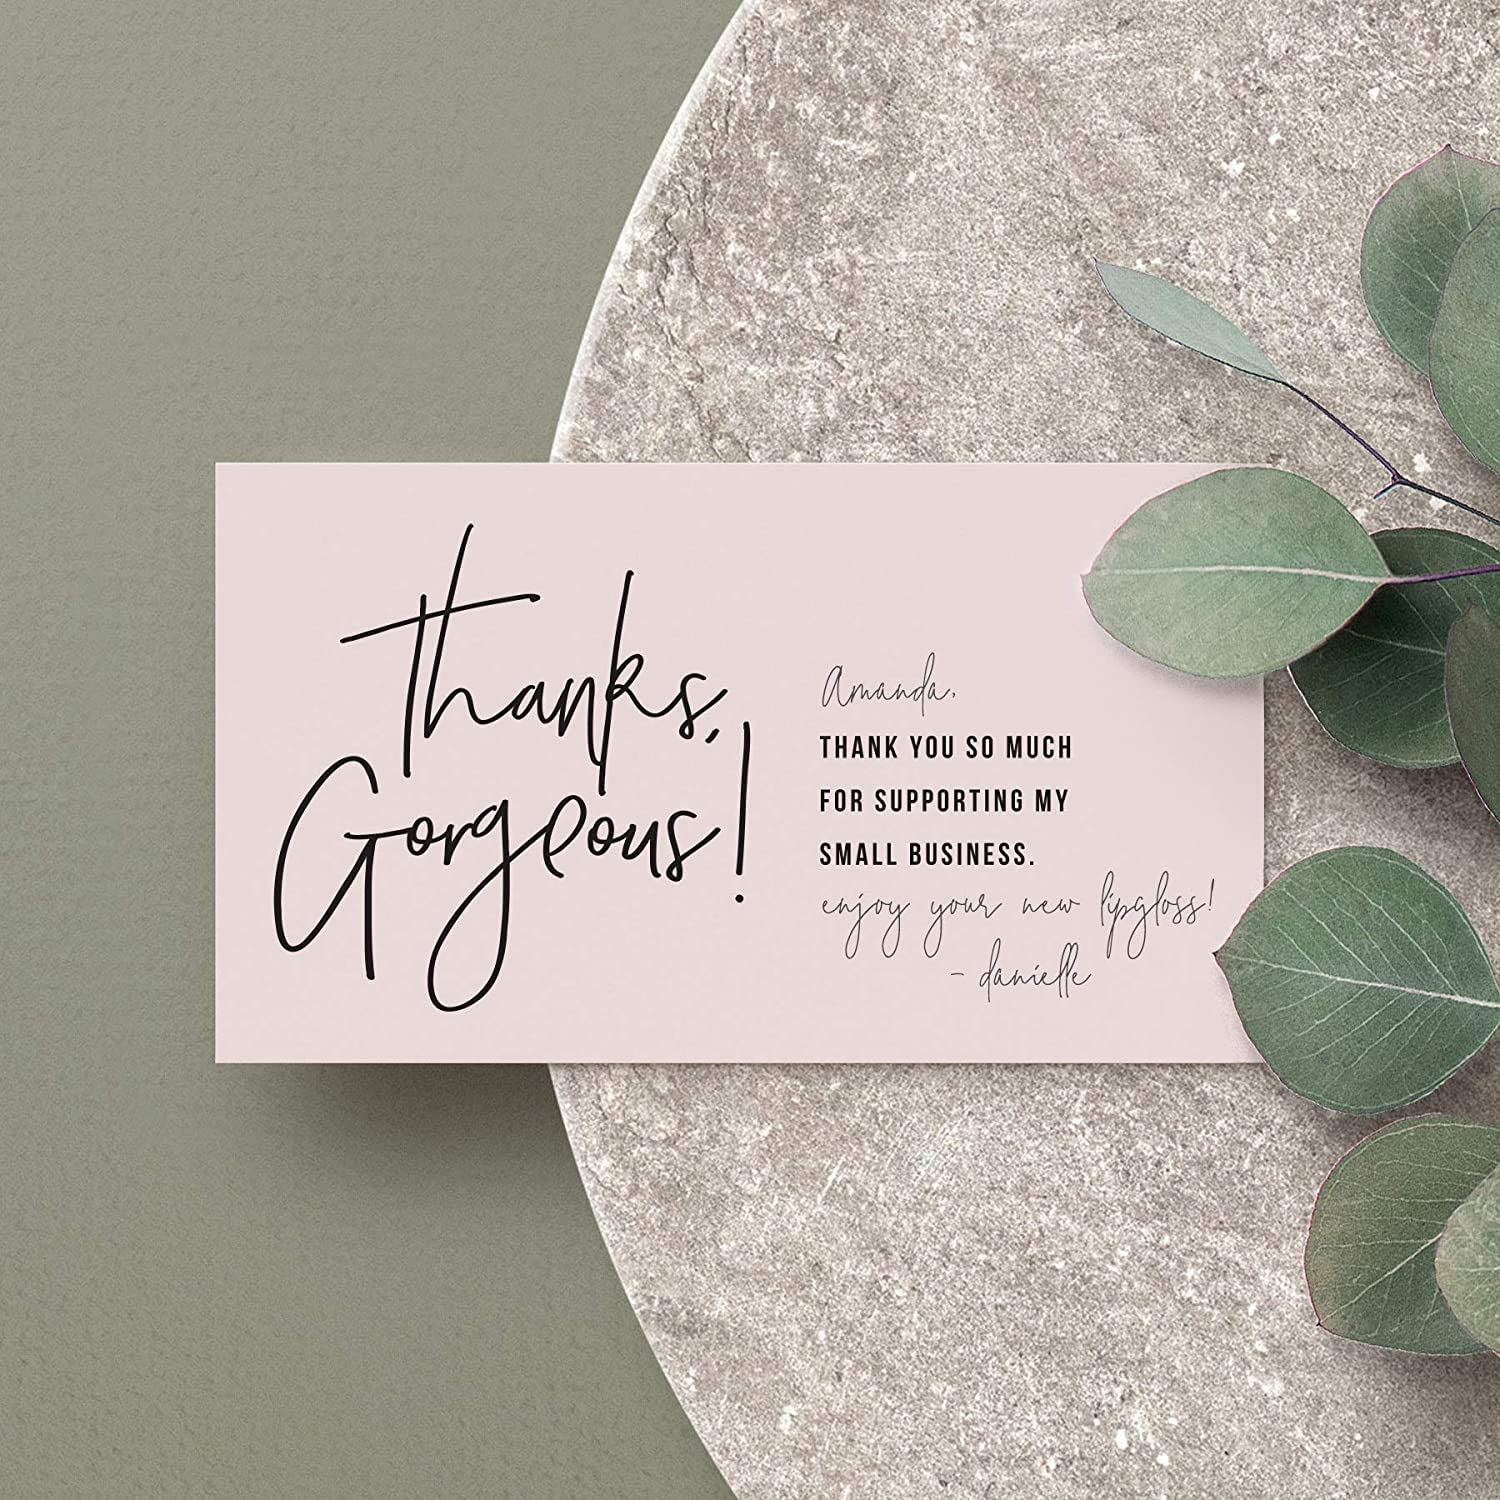 Bliss Collections Thank You For Supporting My Small Business Cards, Premium design, 2 x 3.5 business card size, perfect for small business owners, thanks gorgeous feminine design, 50 pack : Office Products